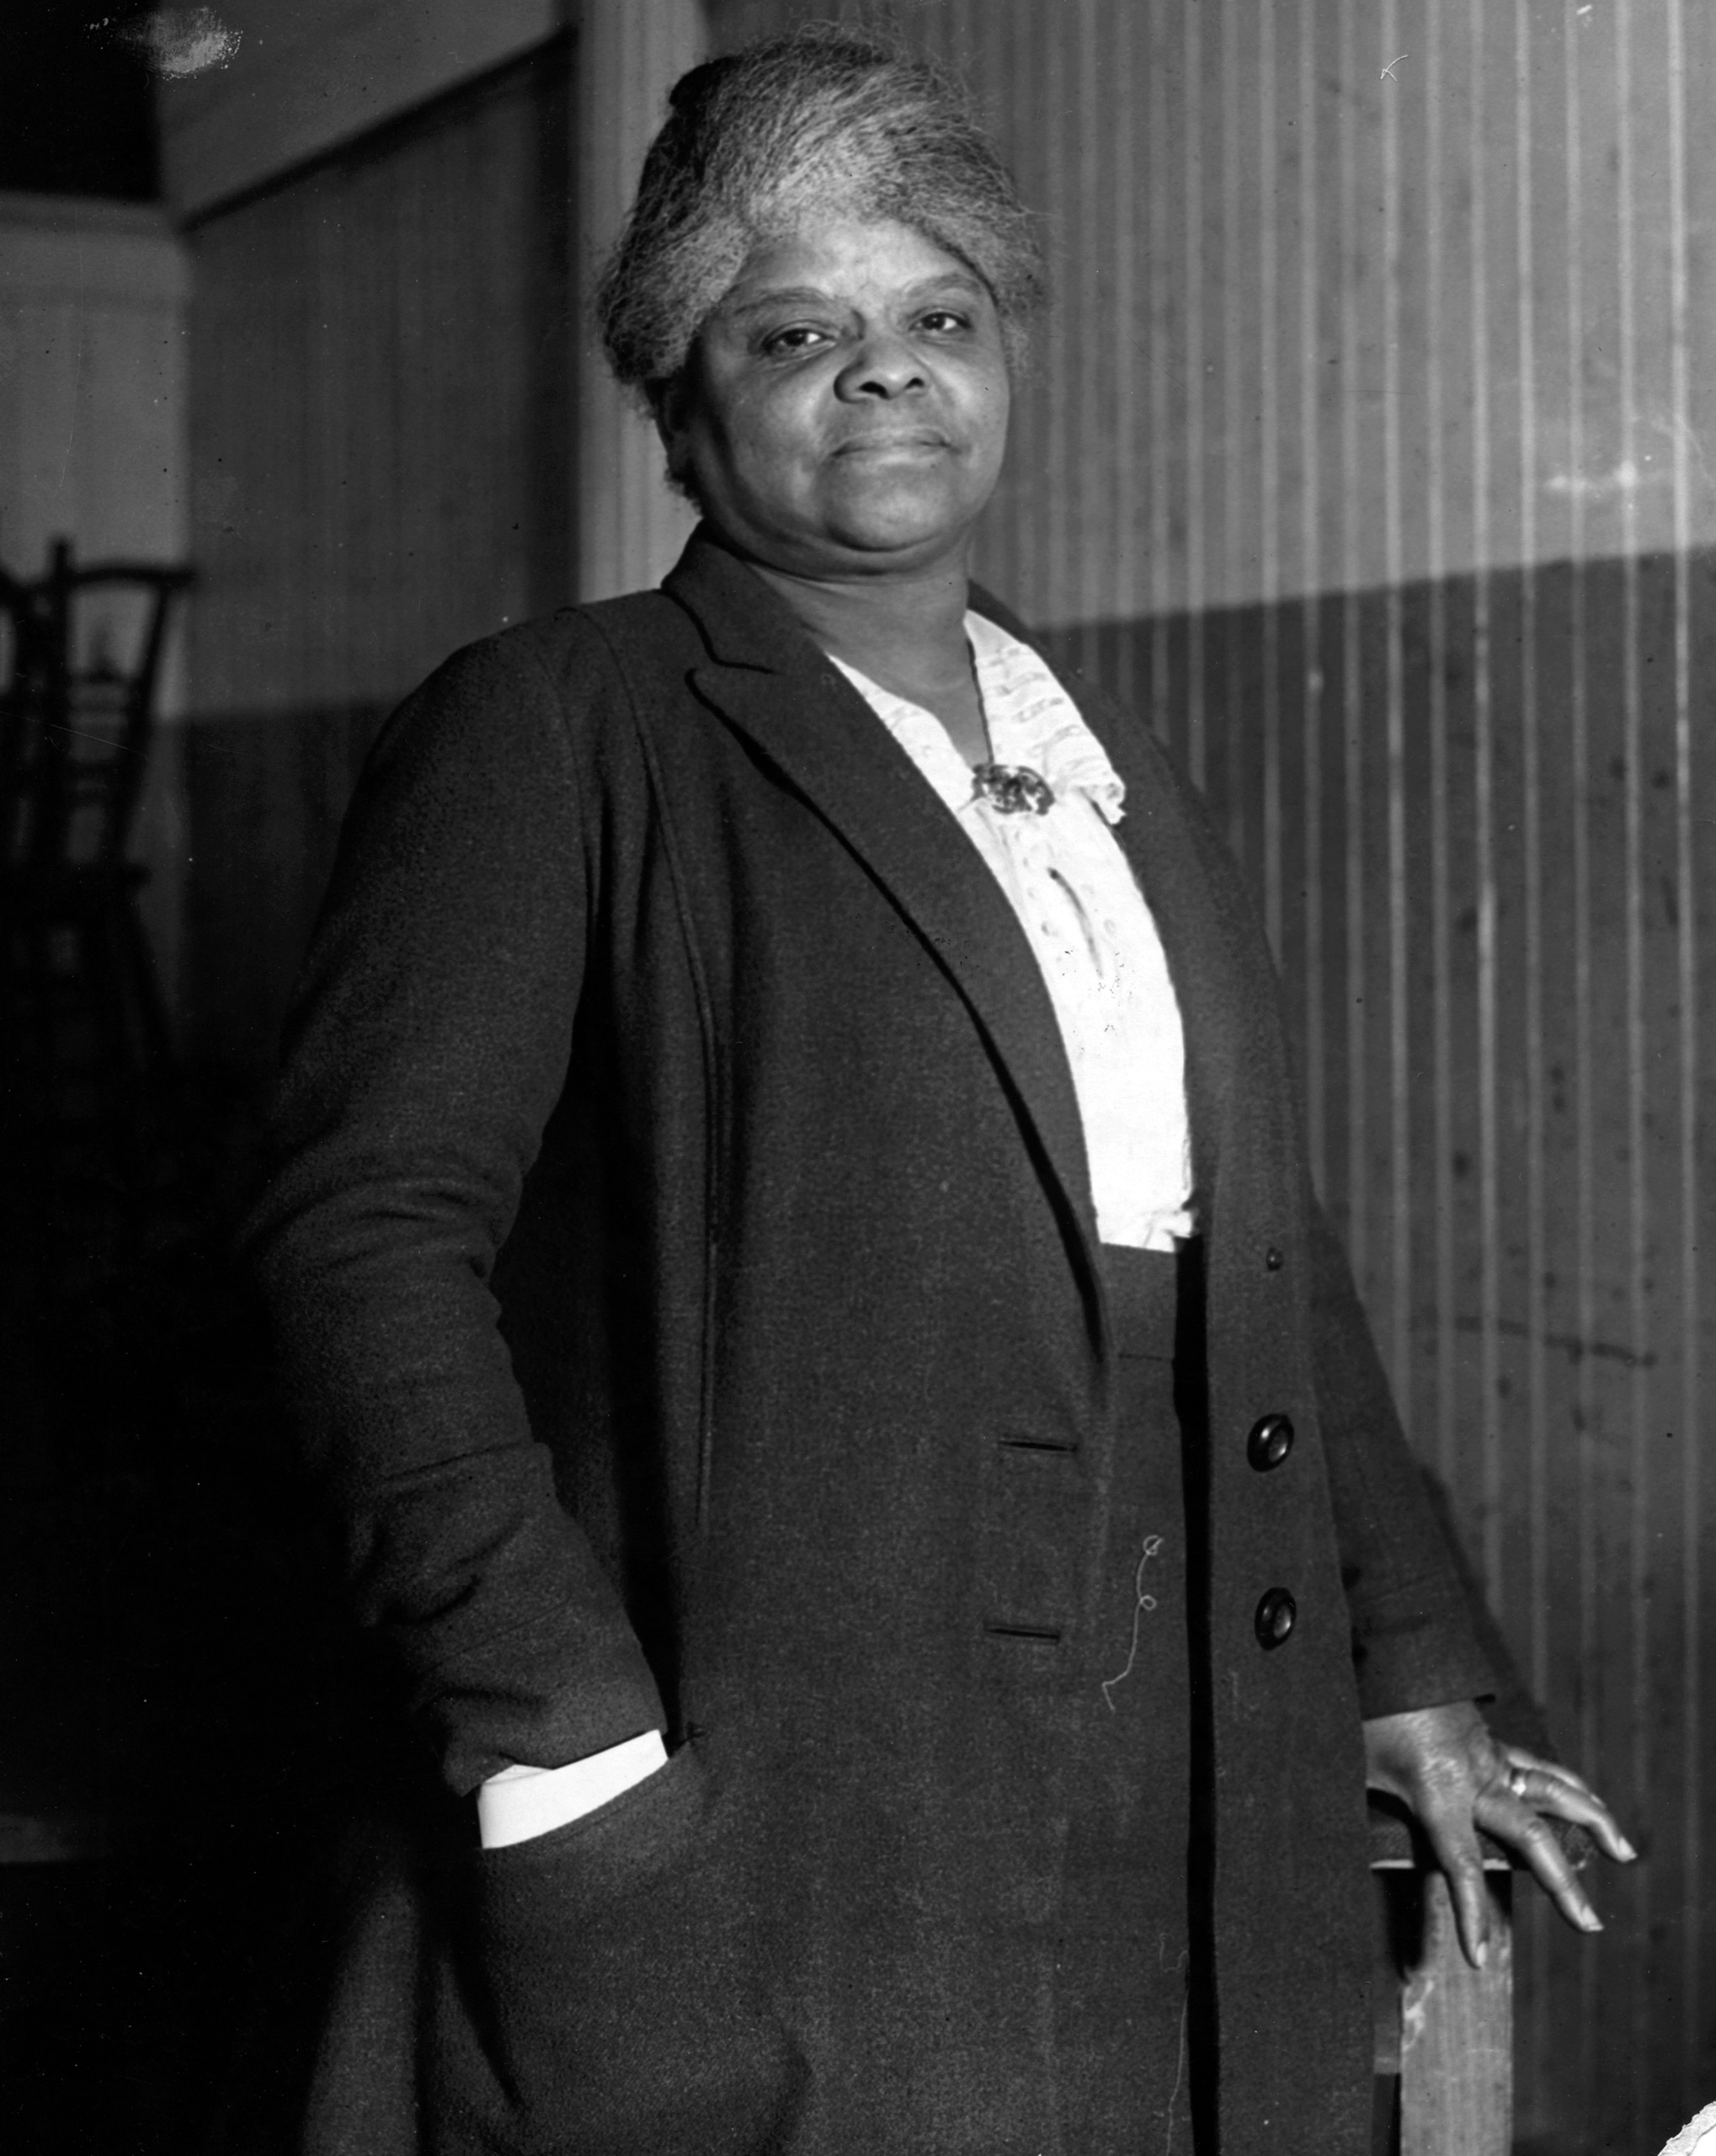 Ida B. Wells (1862-1931), pictured in 1920.In 1913, Wells founded a suffrage organization specifically for black women and worked to integrate the women's-rights movement.